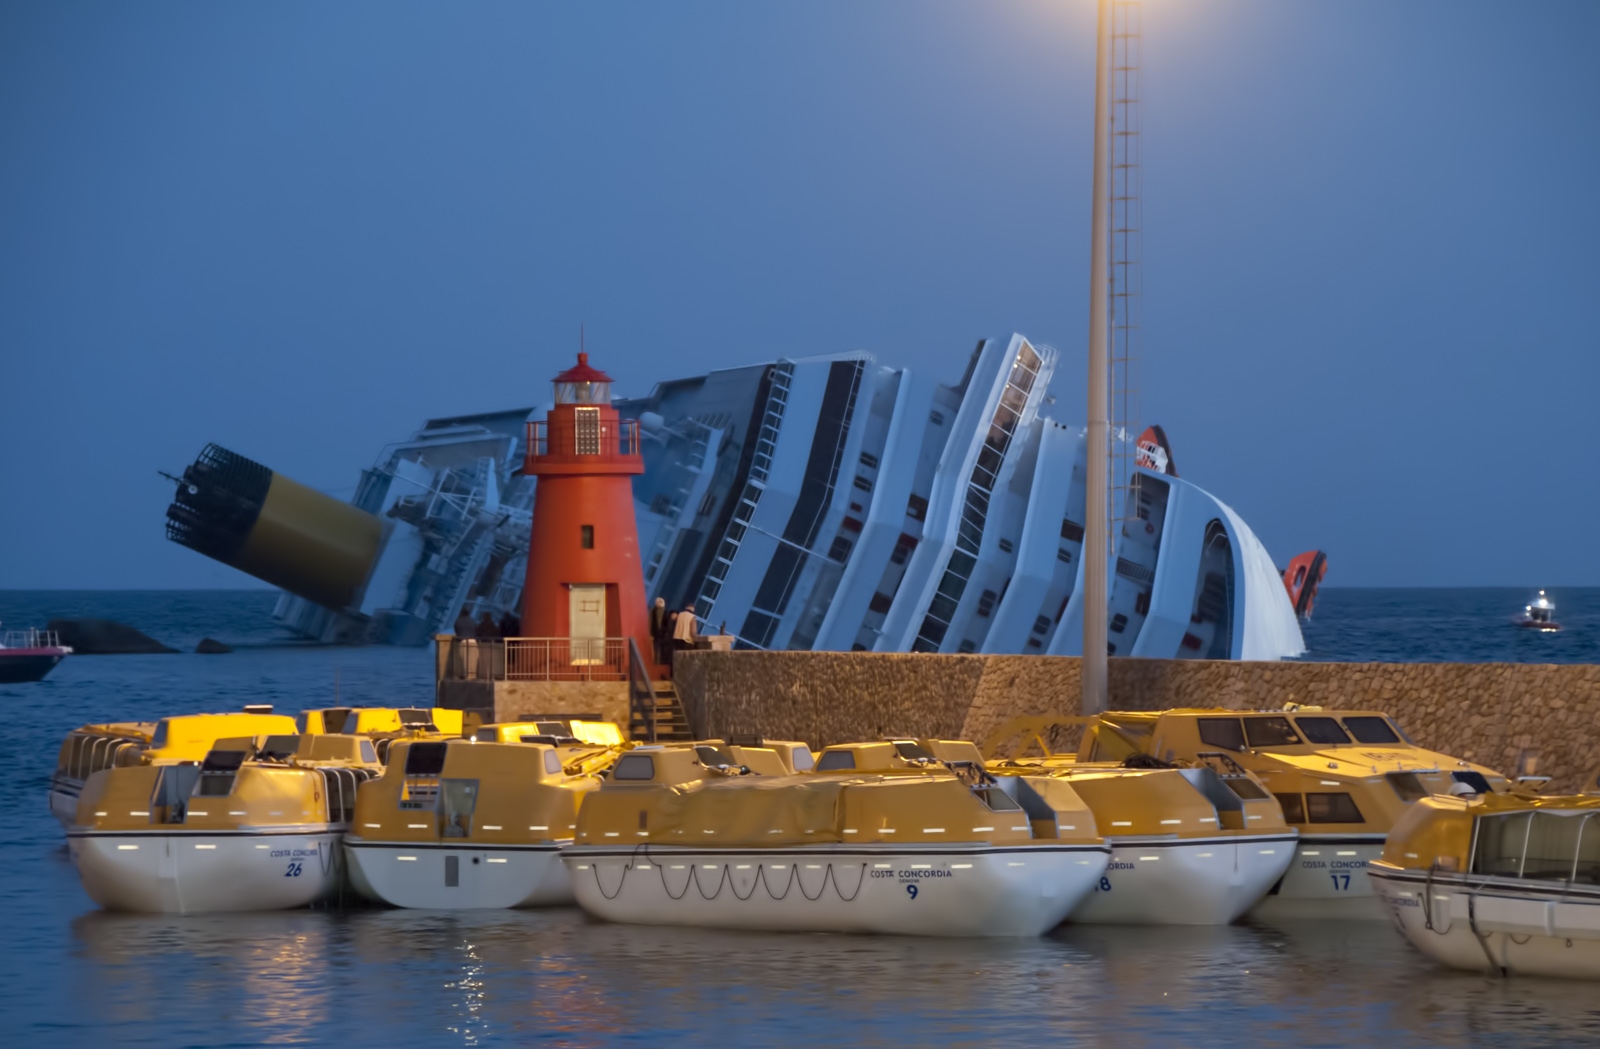 http://upload.wikimedia.org/wikipedia/commons/8/80/Collision_of_Costa_Concordia_24.jpg